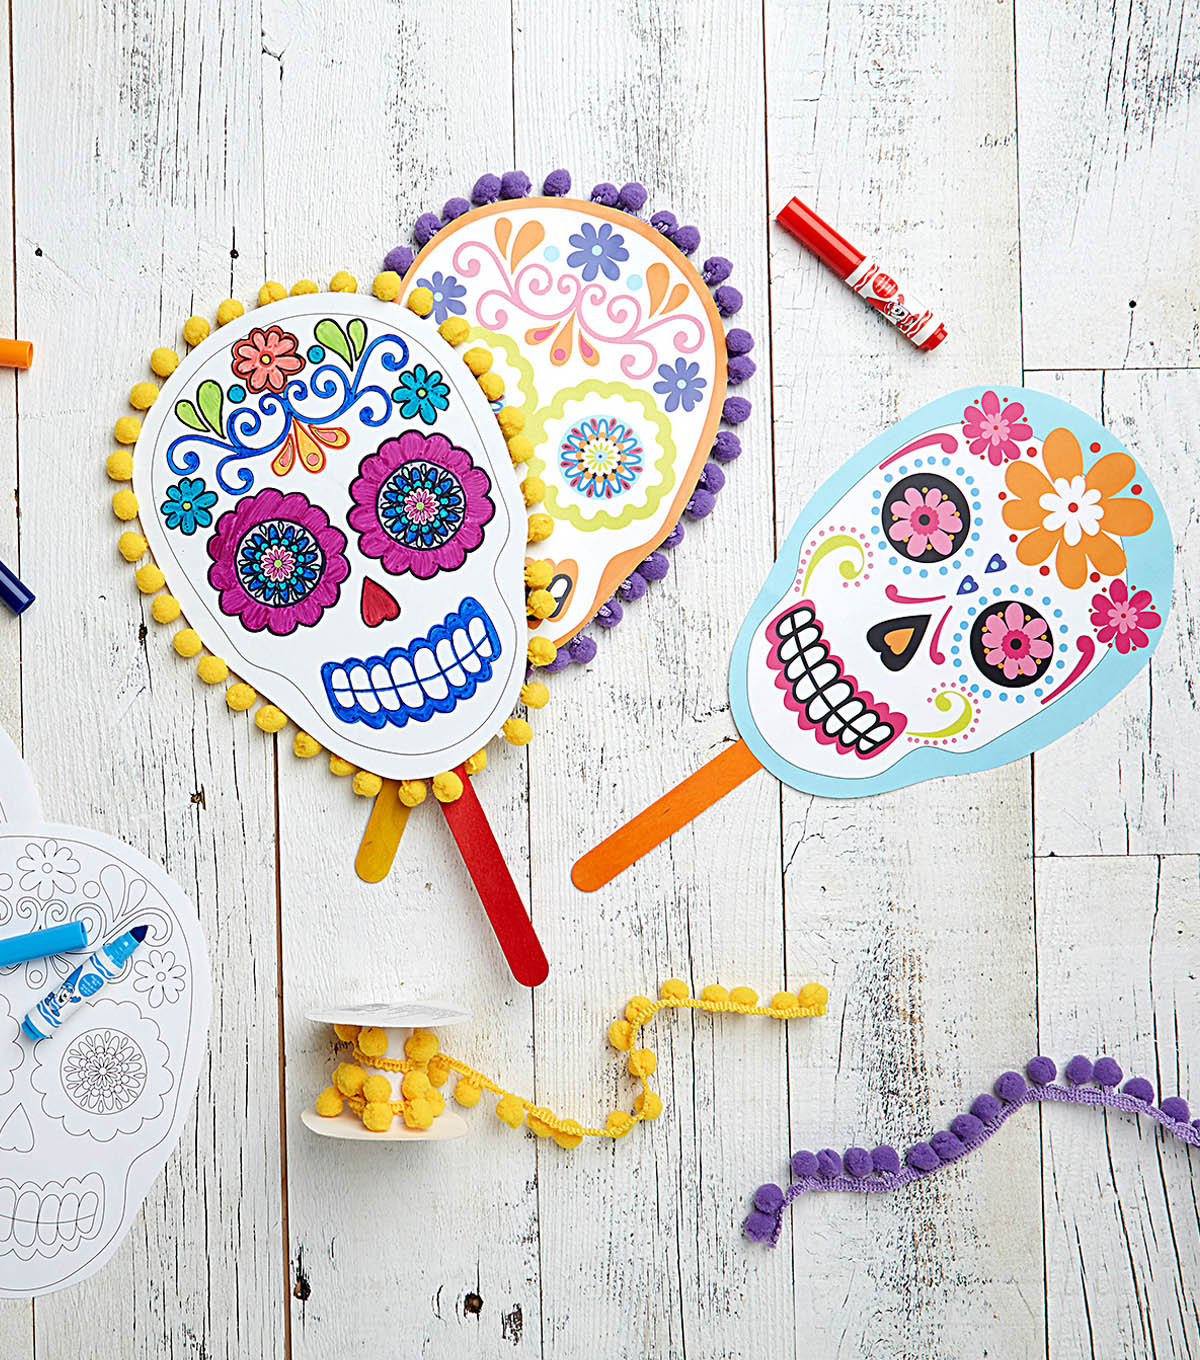 photo about Printable Masks titled Sugar Skull Printable Masks JOANN